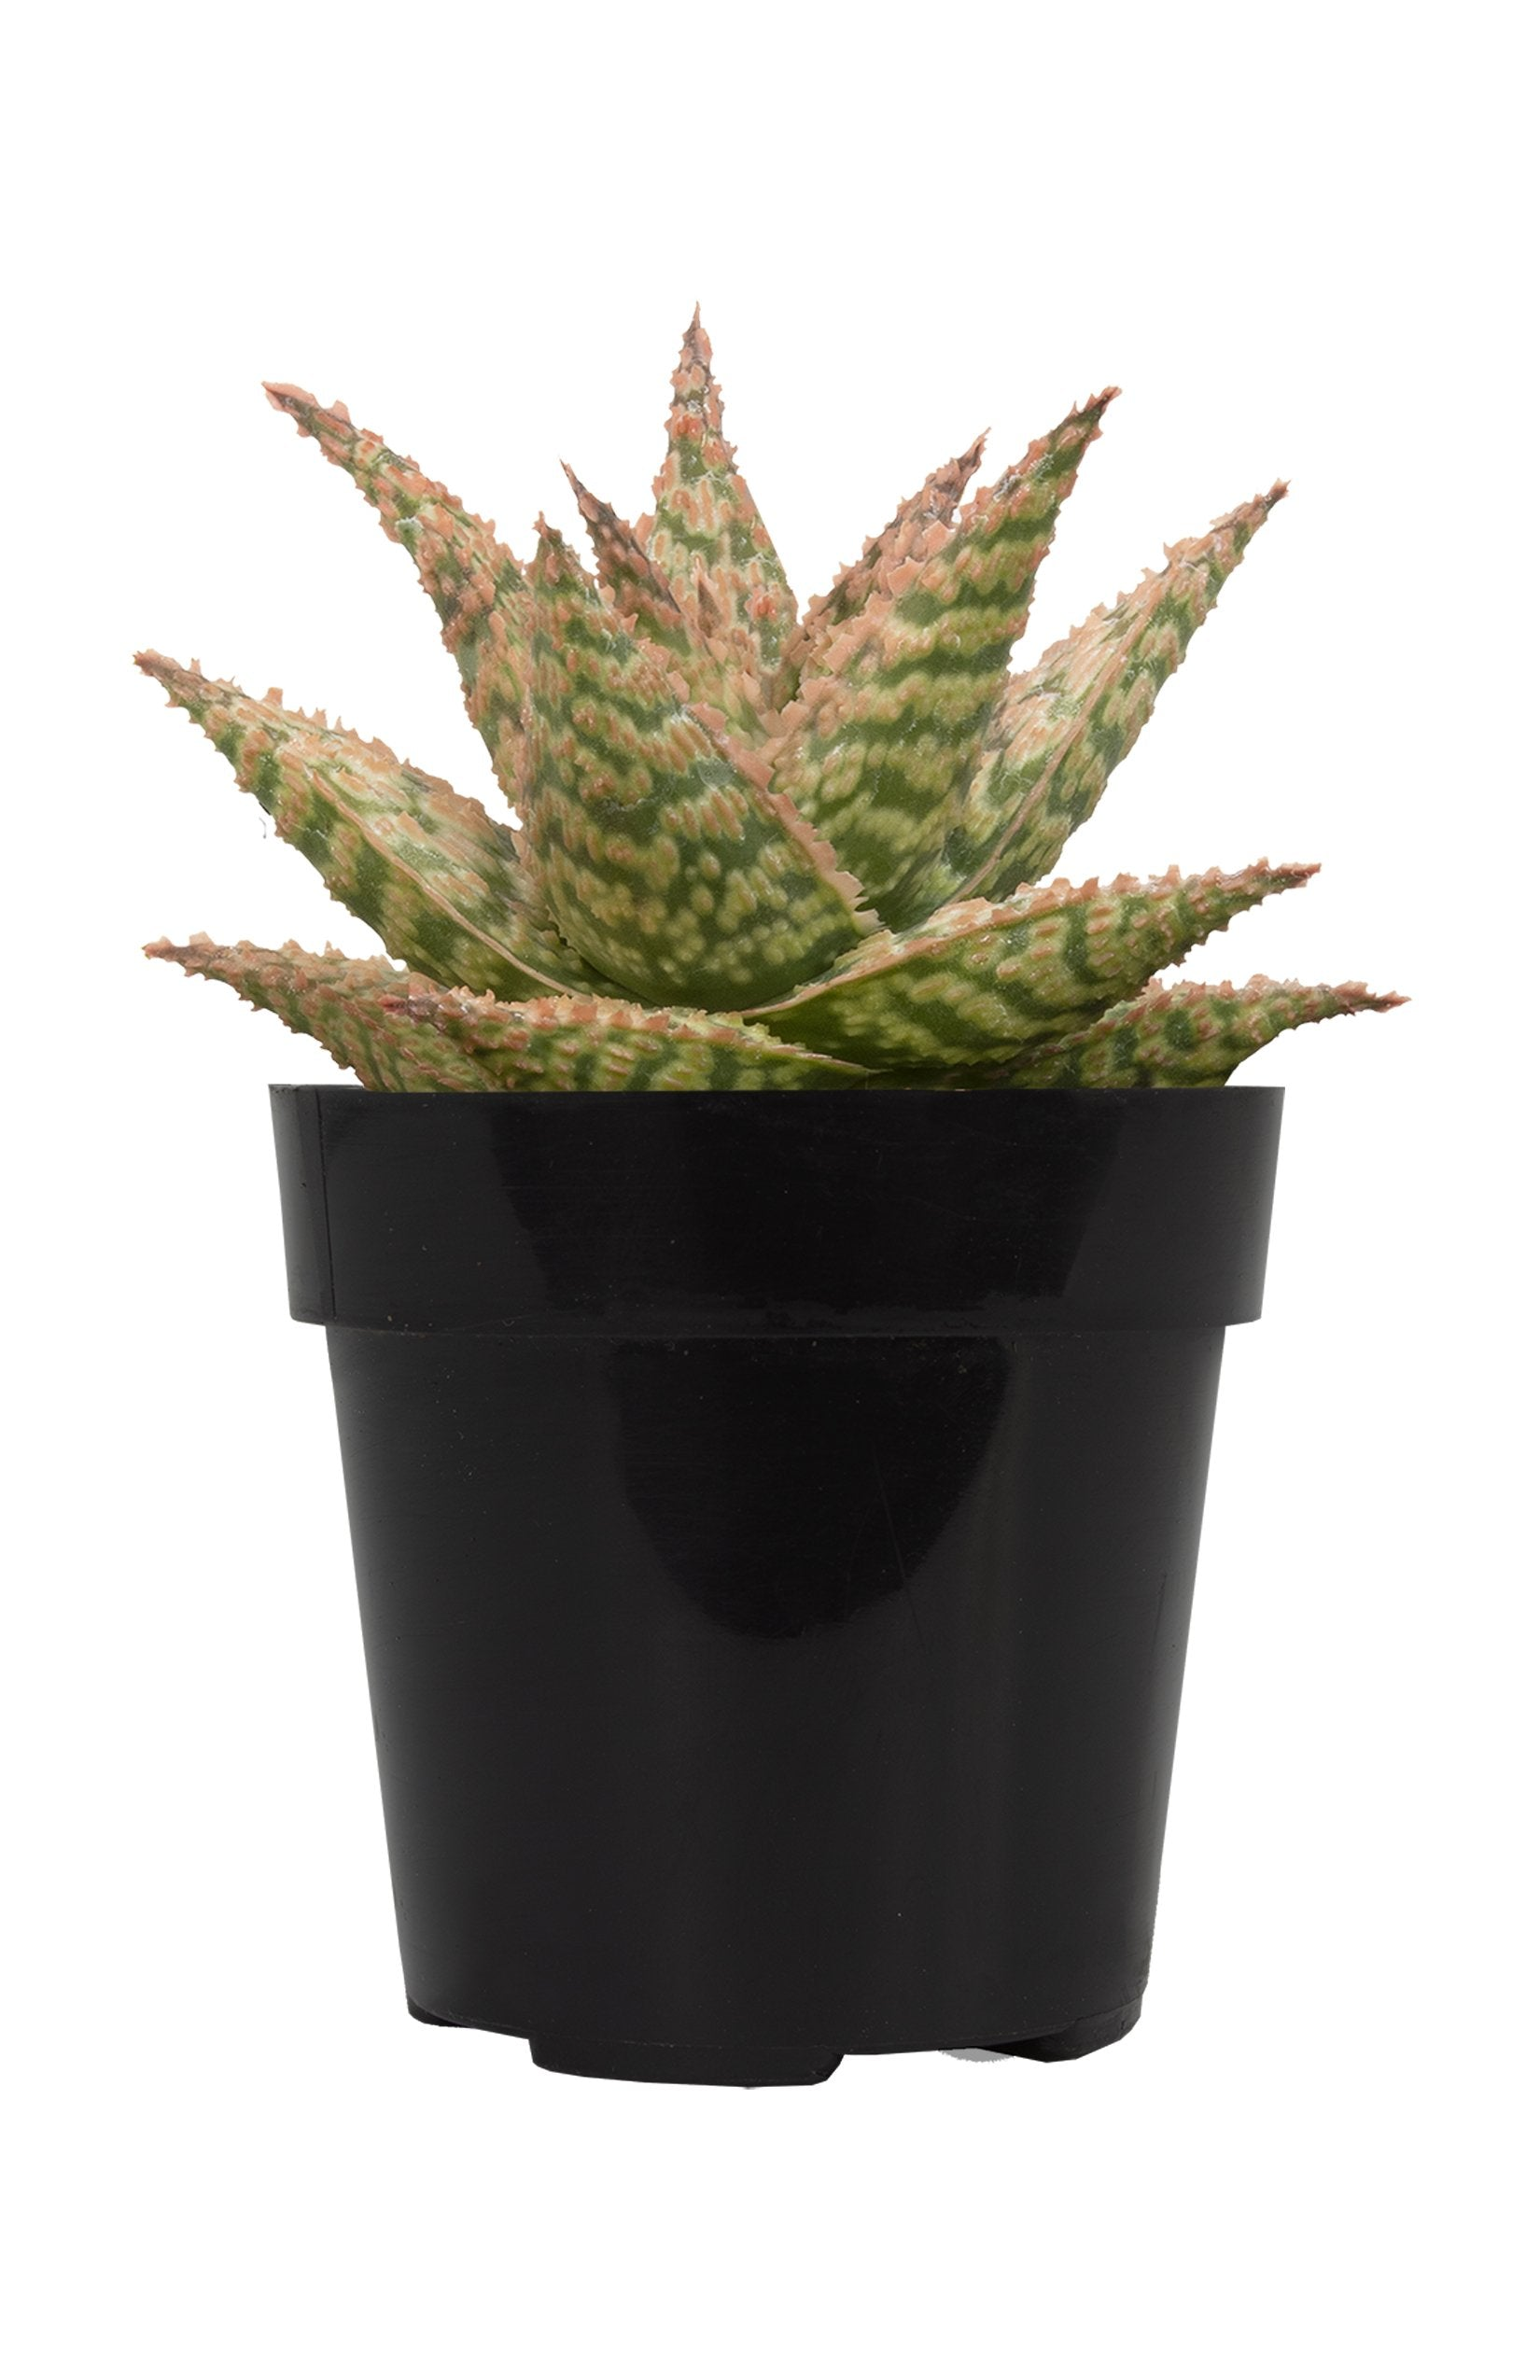 Aloe firecracker front white background